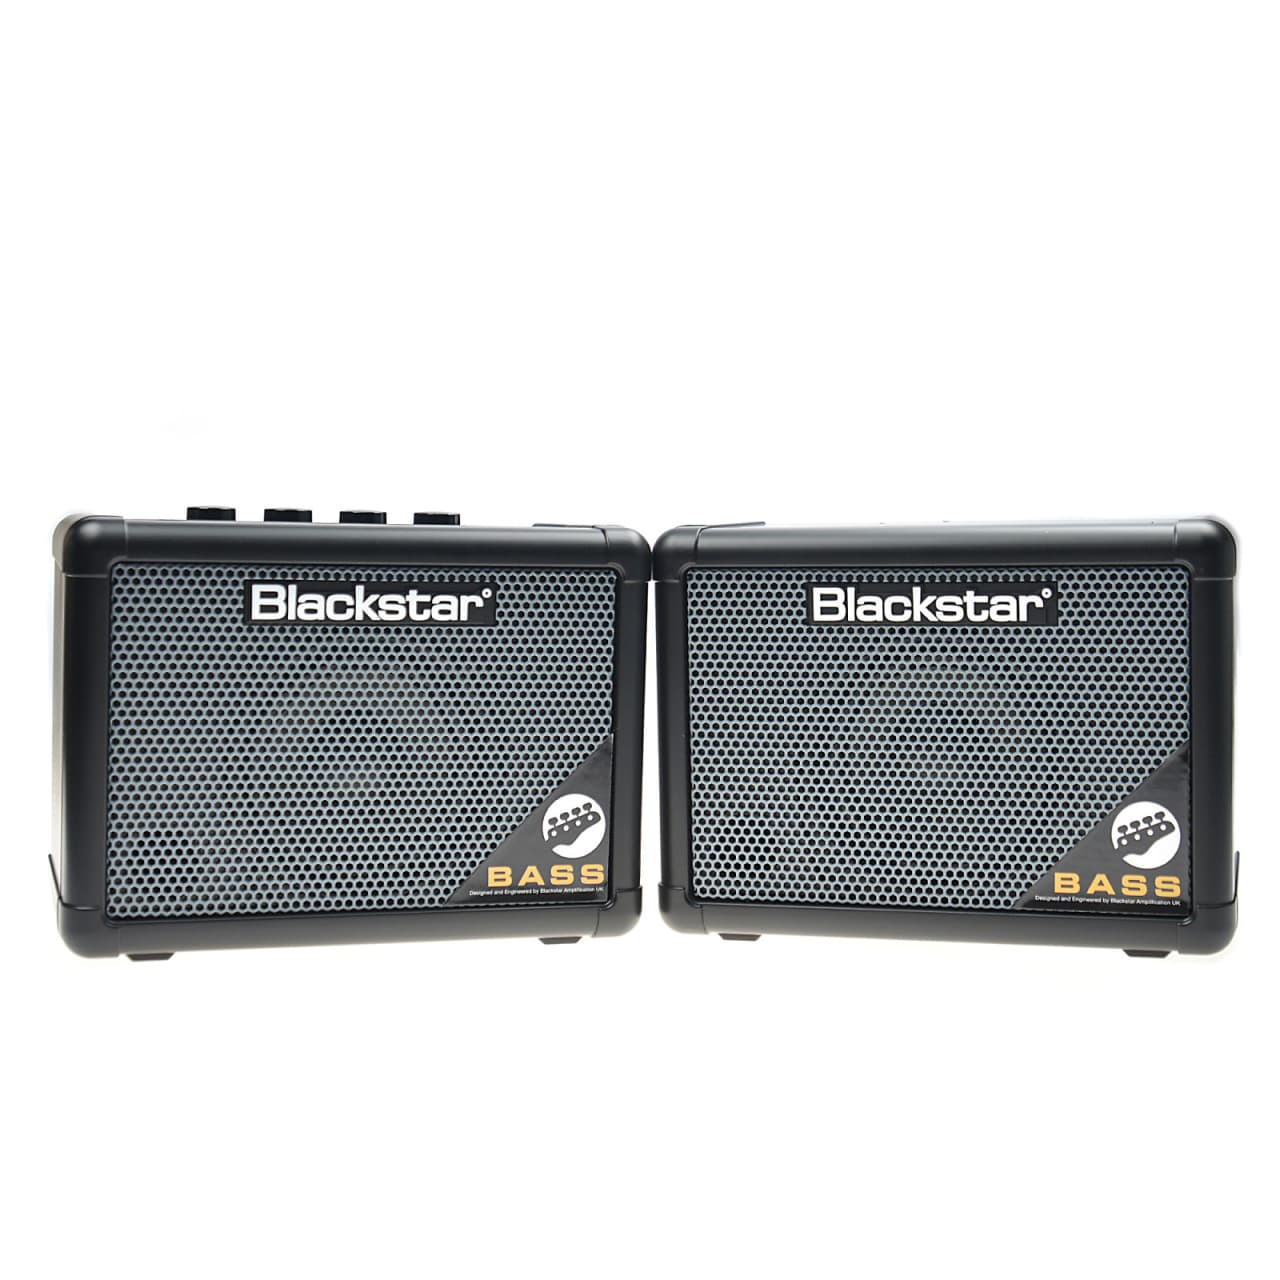 blackstar fly 3 battery powered bass amp cab and psu reverb. Black Bedroom Furniture Sets. Home Design Ideas